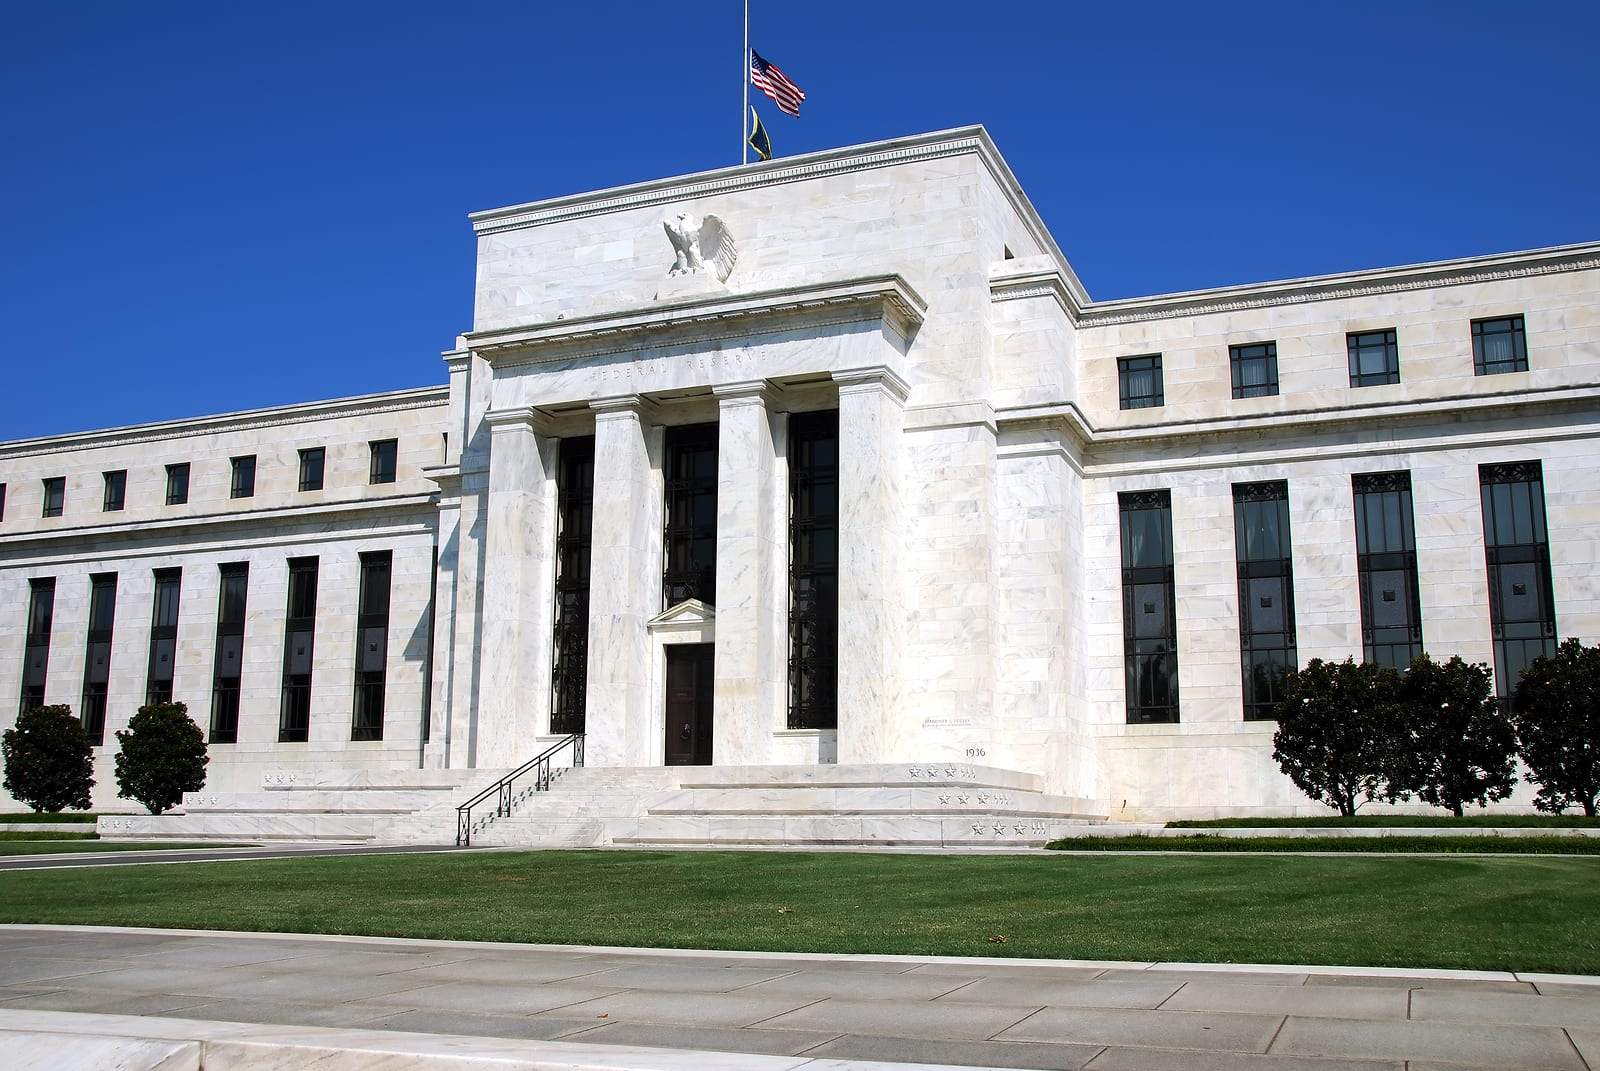 Agencies adopt final rule to exclude community banks from the Volcker Rule